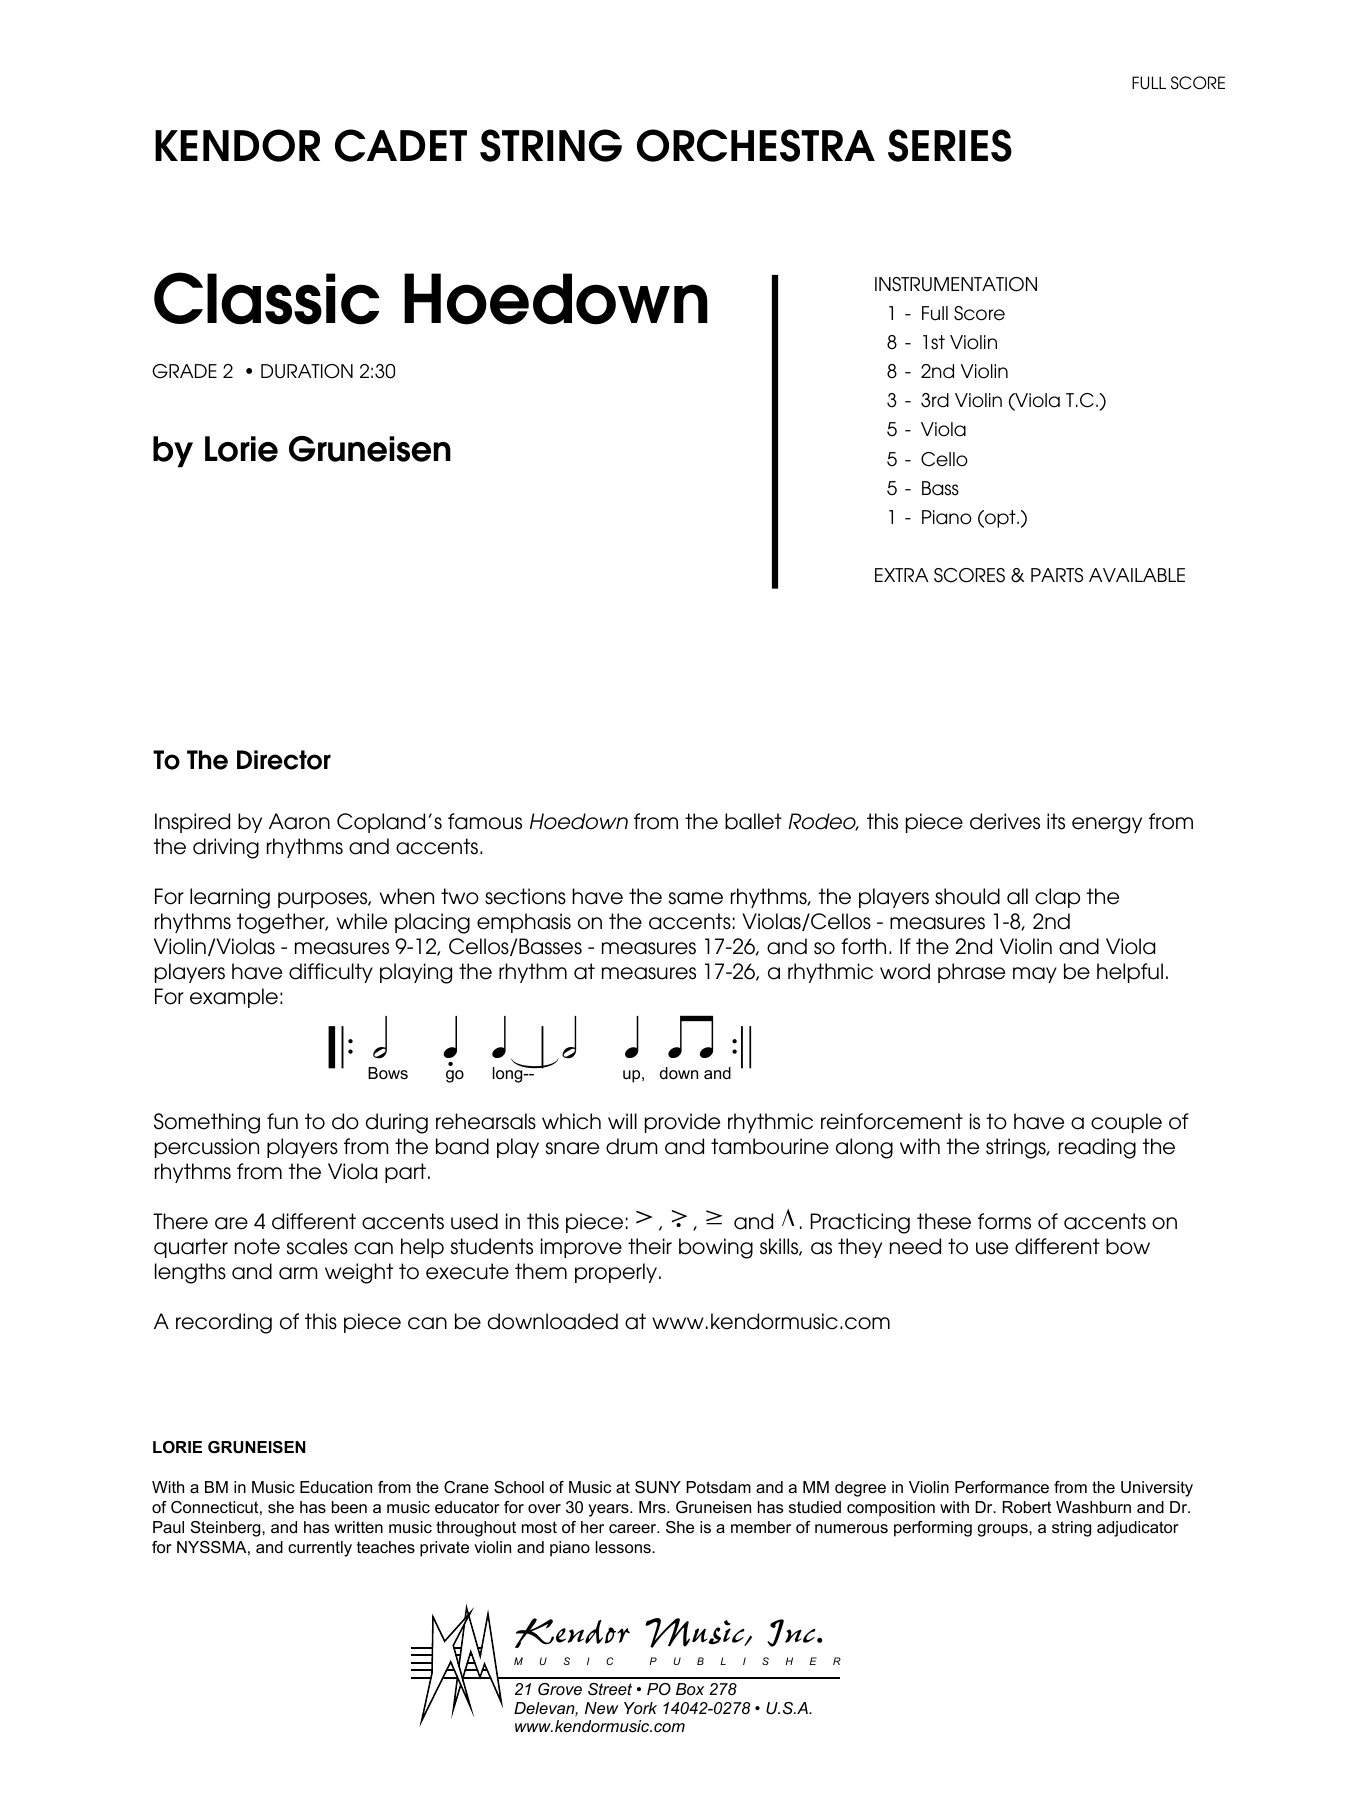 Classic Hoedown (COMPLETE) sheet music for orchestra by Lorie Gruneisen